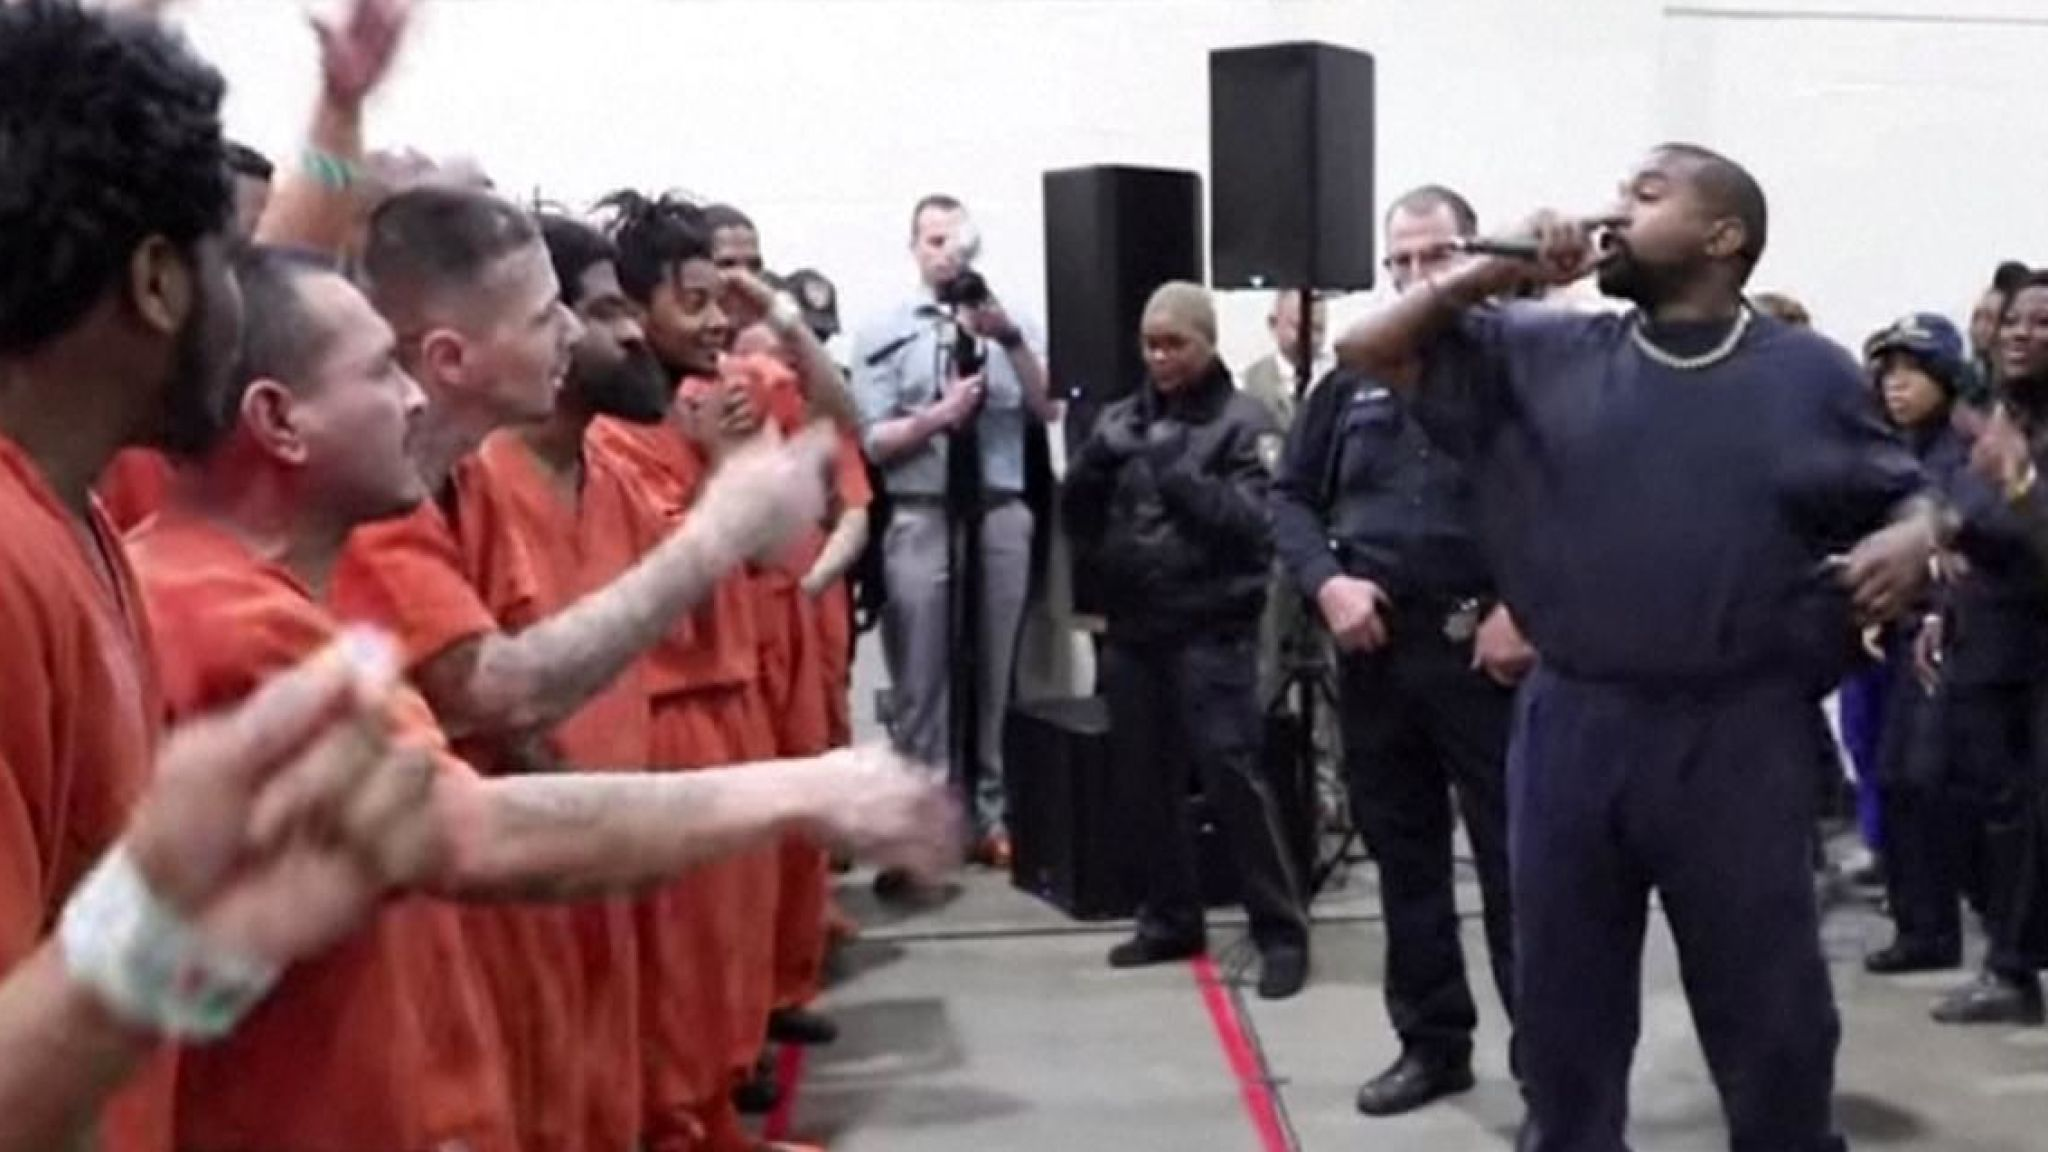 Kanye West performs Jesus is King to tearful prison inmates at Texas jail